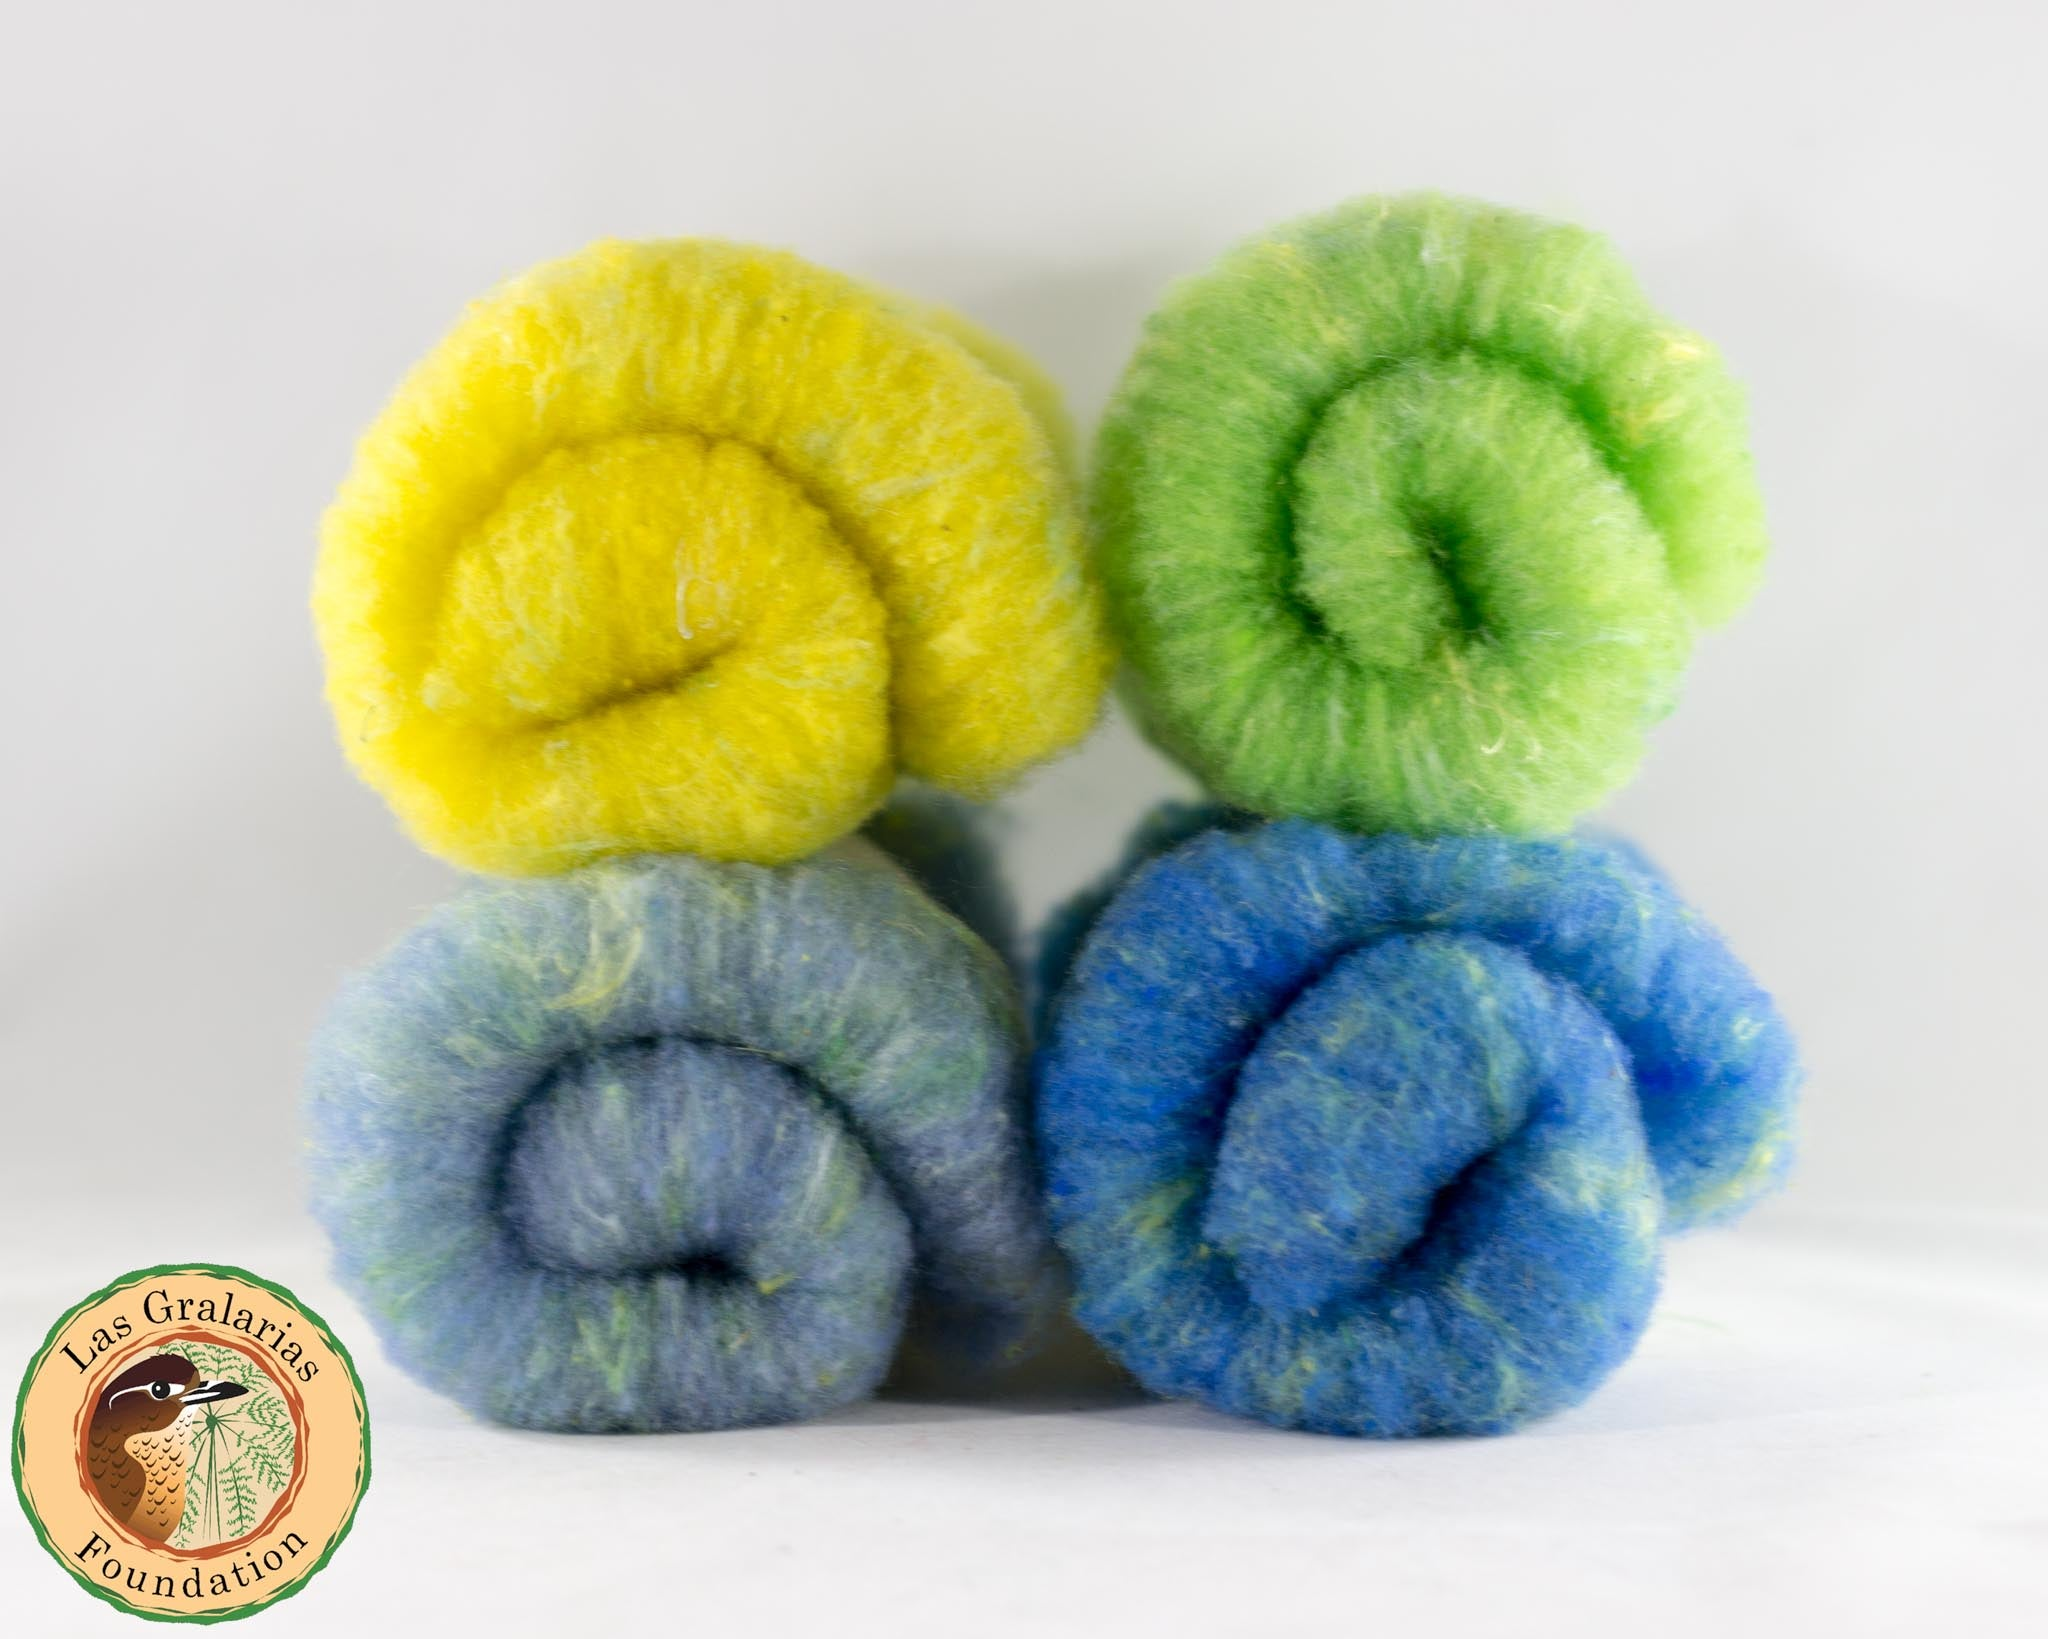 Rambouillet Milkweed Batts, Cheerful Day Gecko - Buchanan Fiber Co.